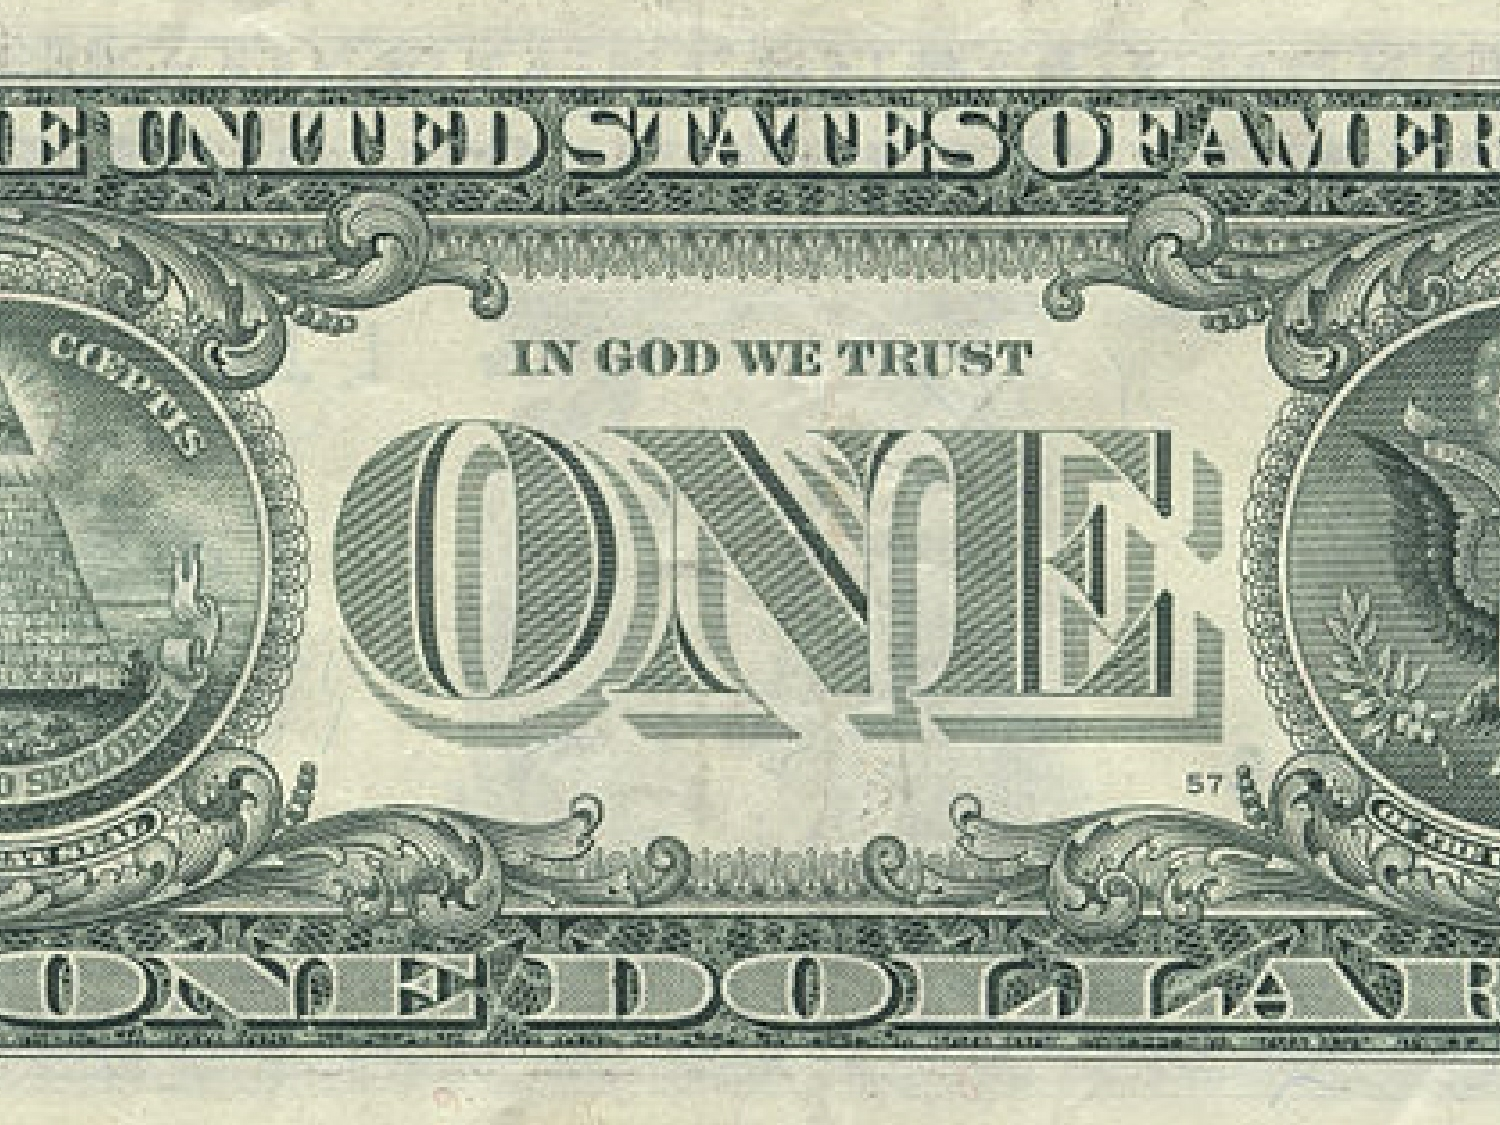 1qle48qBTd2IS8xTuSSC_dollar-bill-in-god-we-trust.jpg